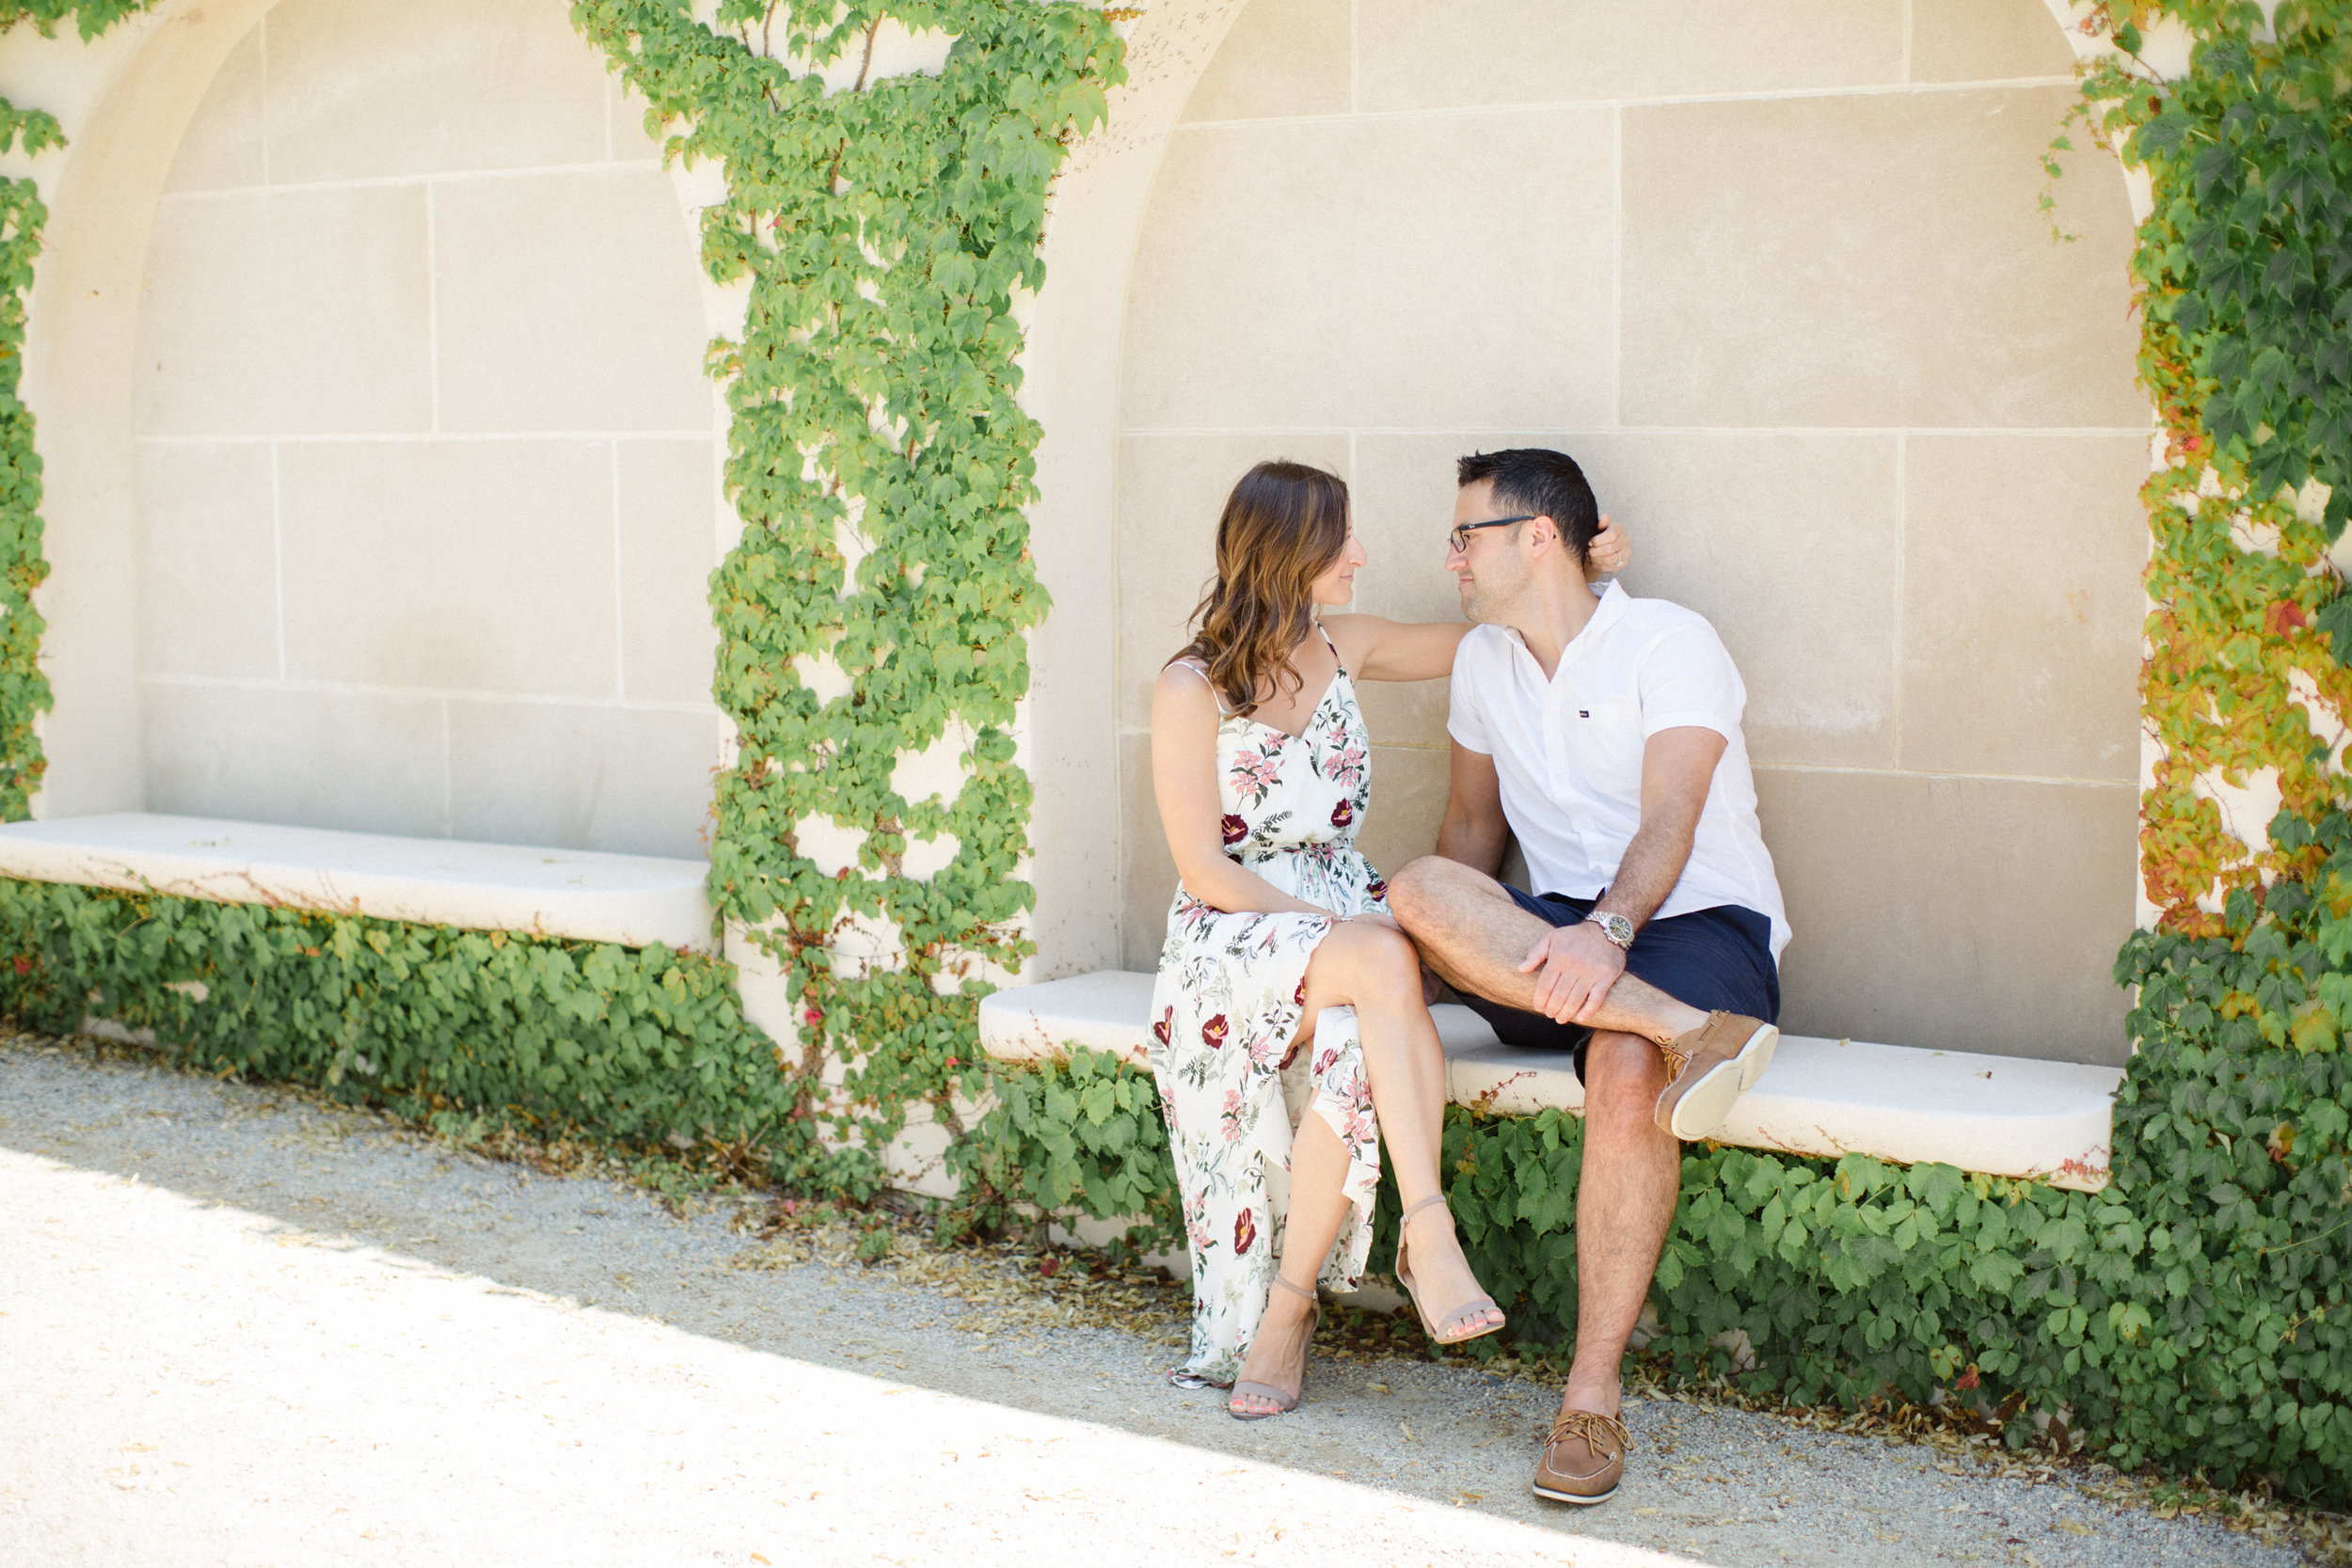 Longwood Gardens Engagement Session Photos_JDP-16.jpg